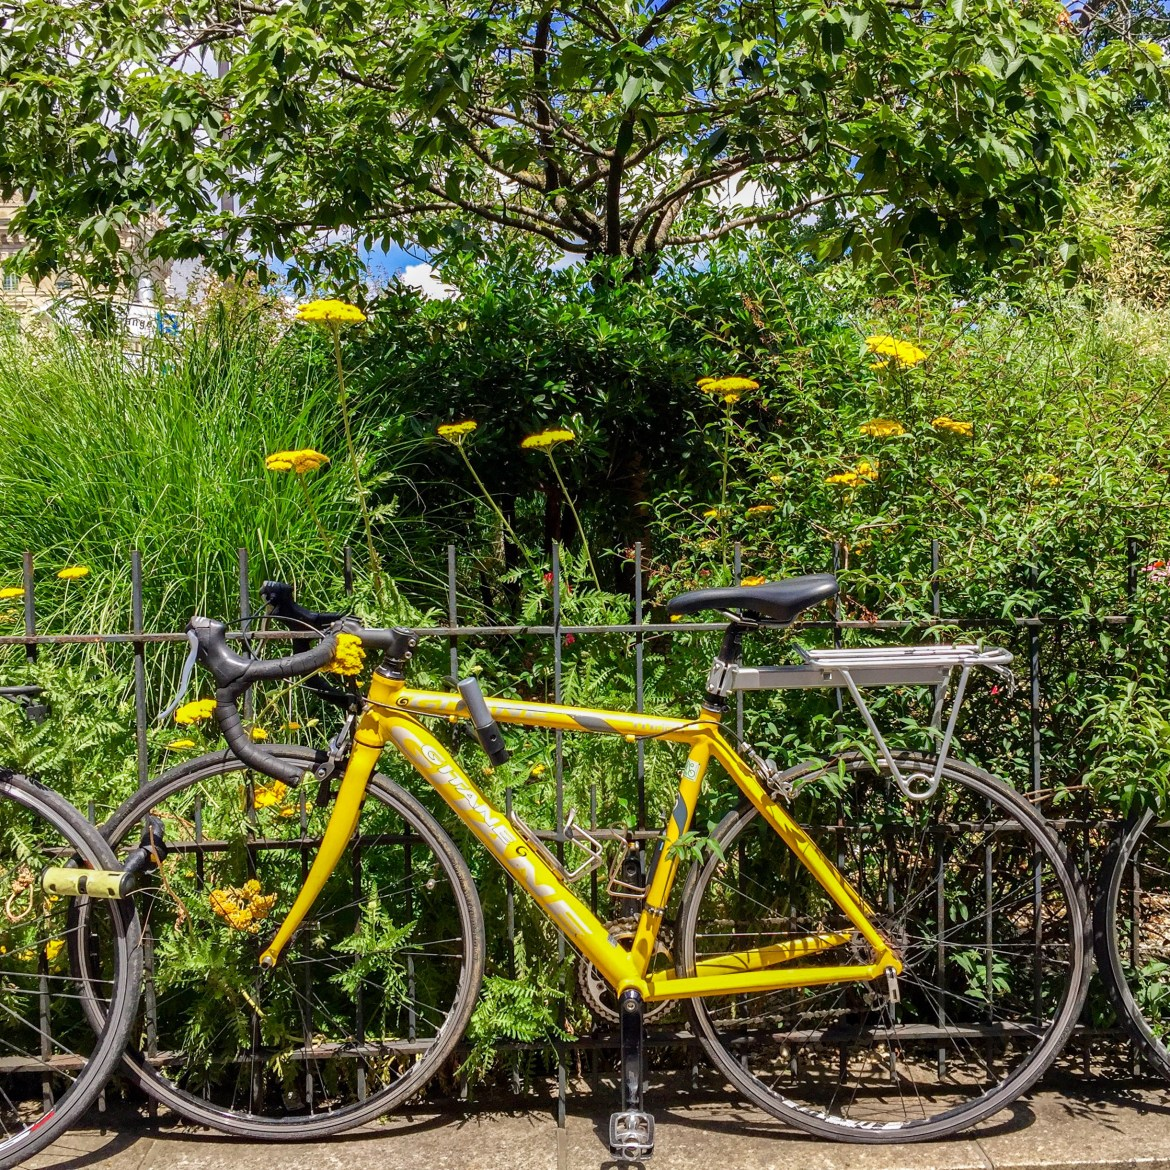 yellow-bicycle-7125